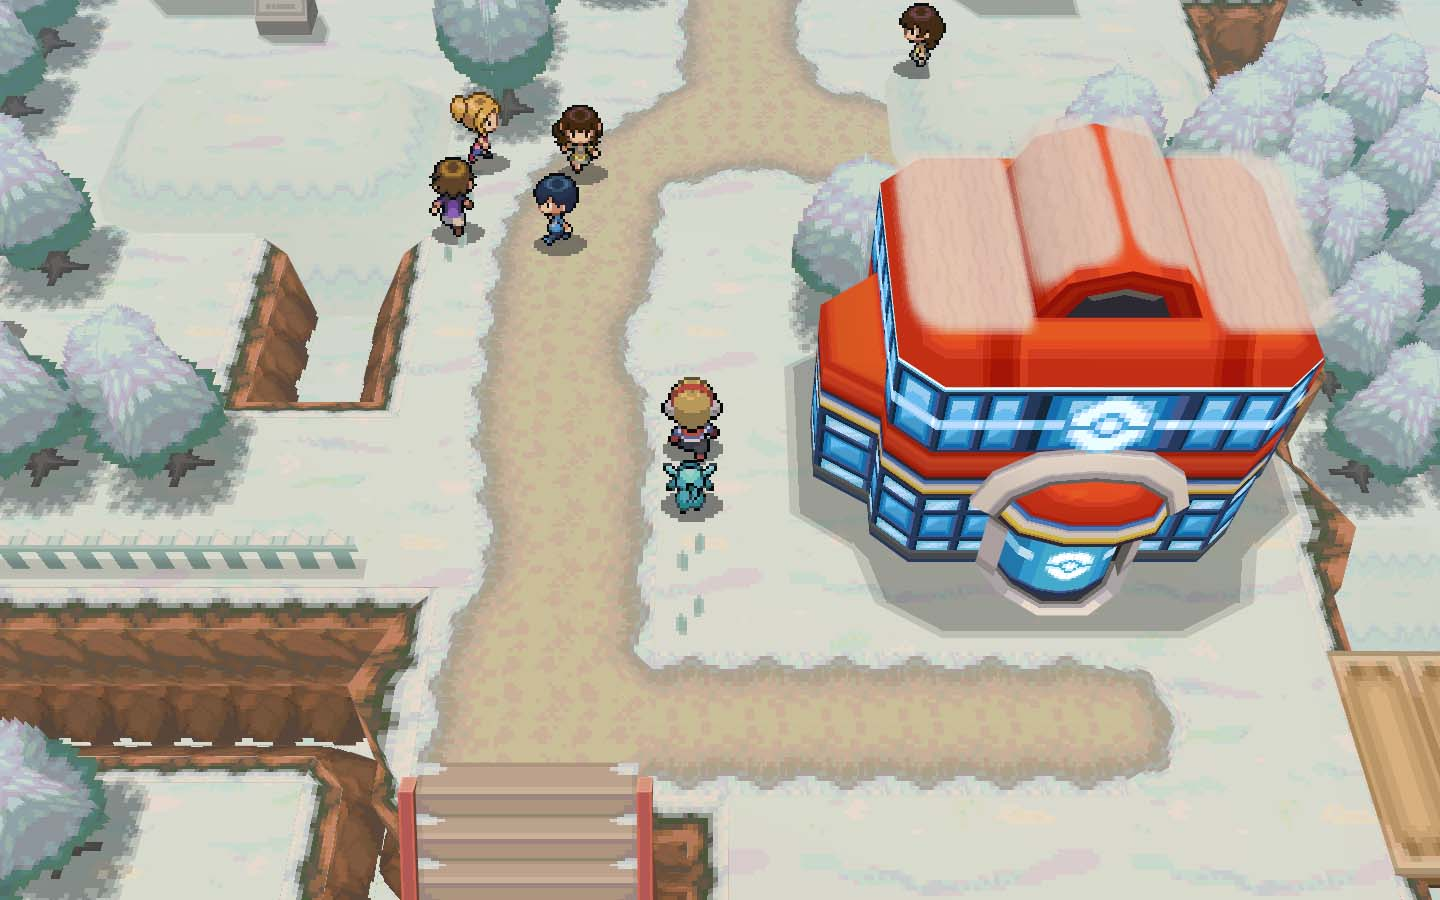 Need more than just the base 'Pokemon' games in your life? Try out these fan games like 'Pokemon Planet', 'PokeMMO', and more!